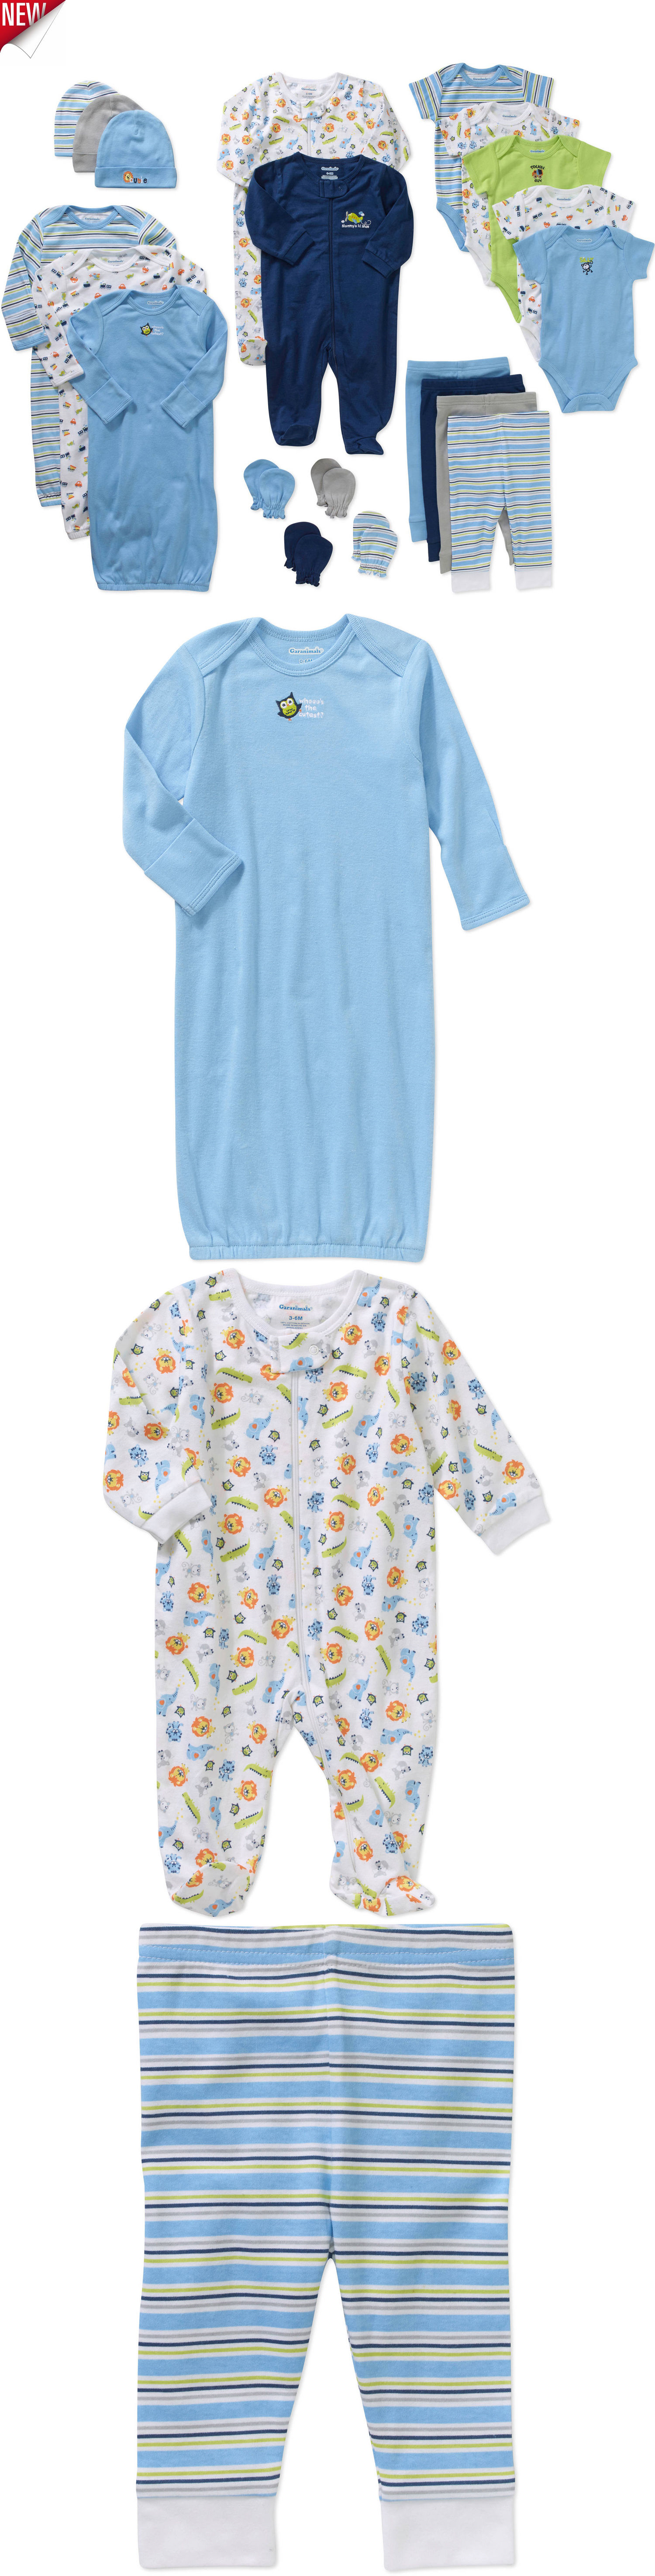 Unique Ideas Of Ebay Baby Boy Clothes Cutest Baby Clothing And